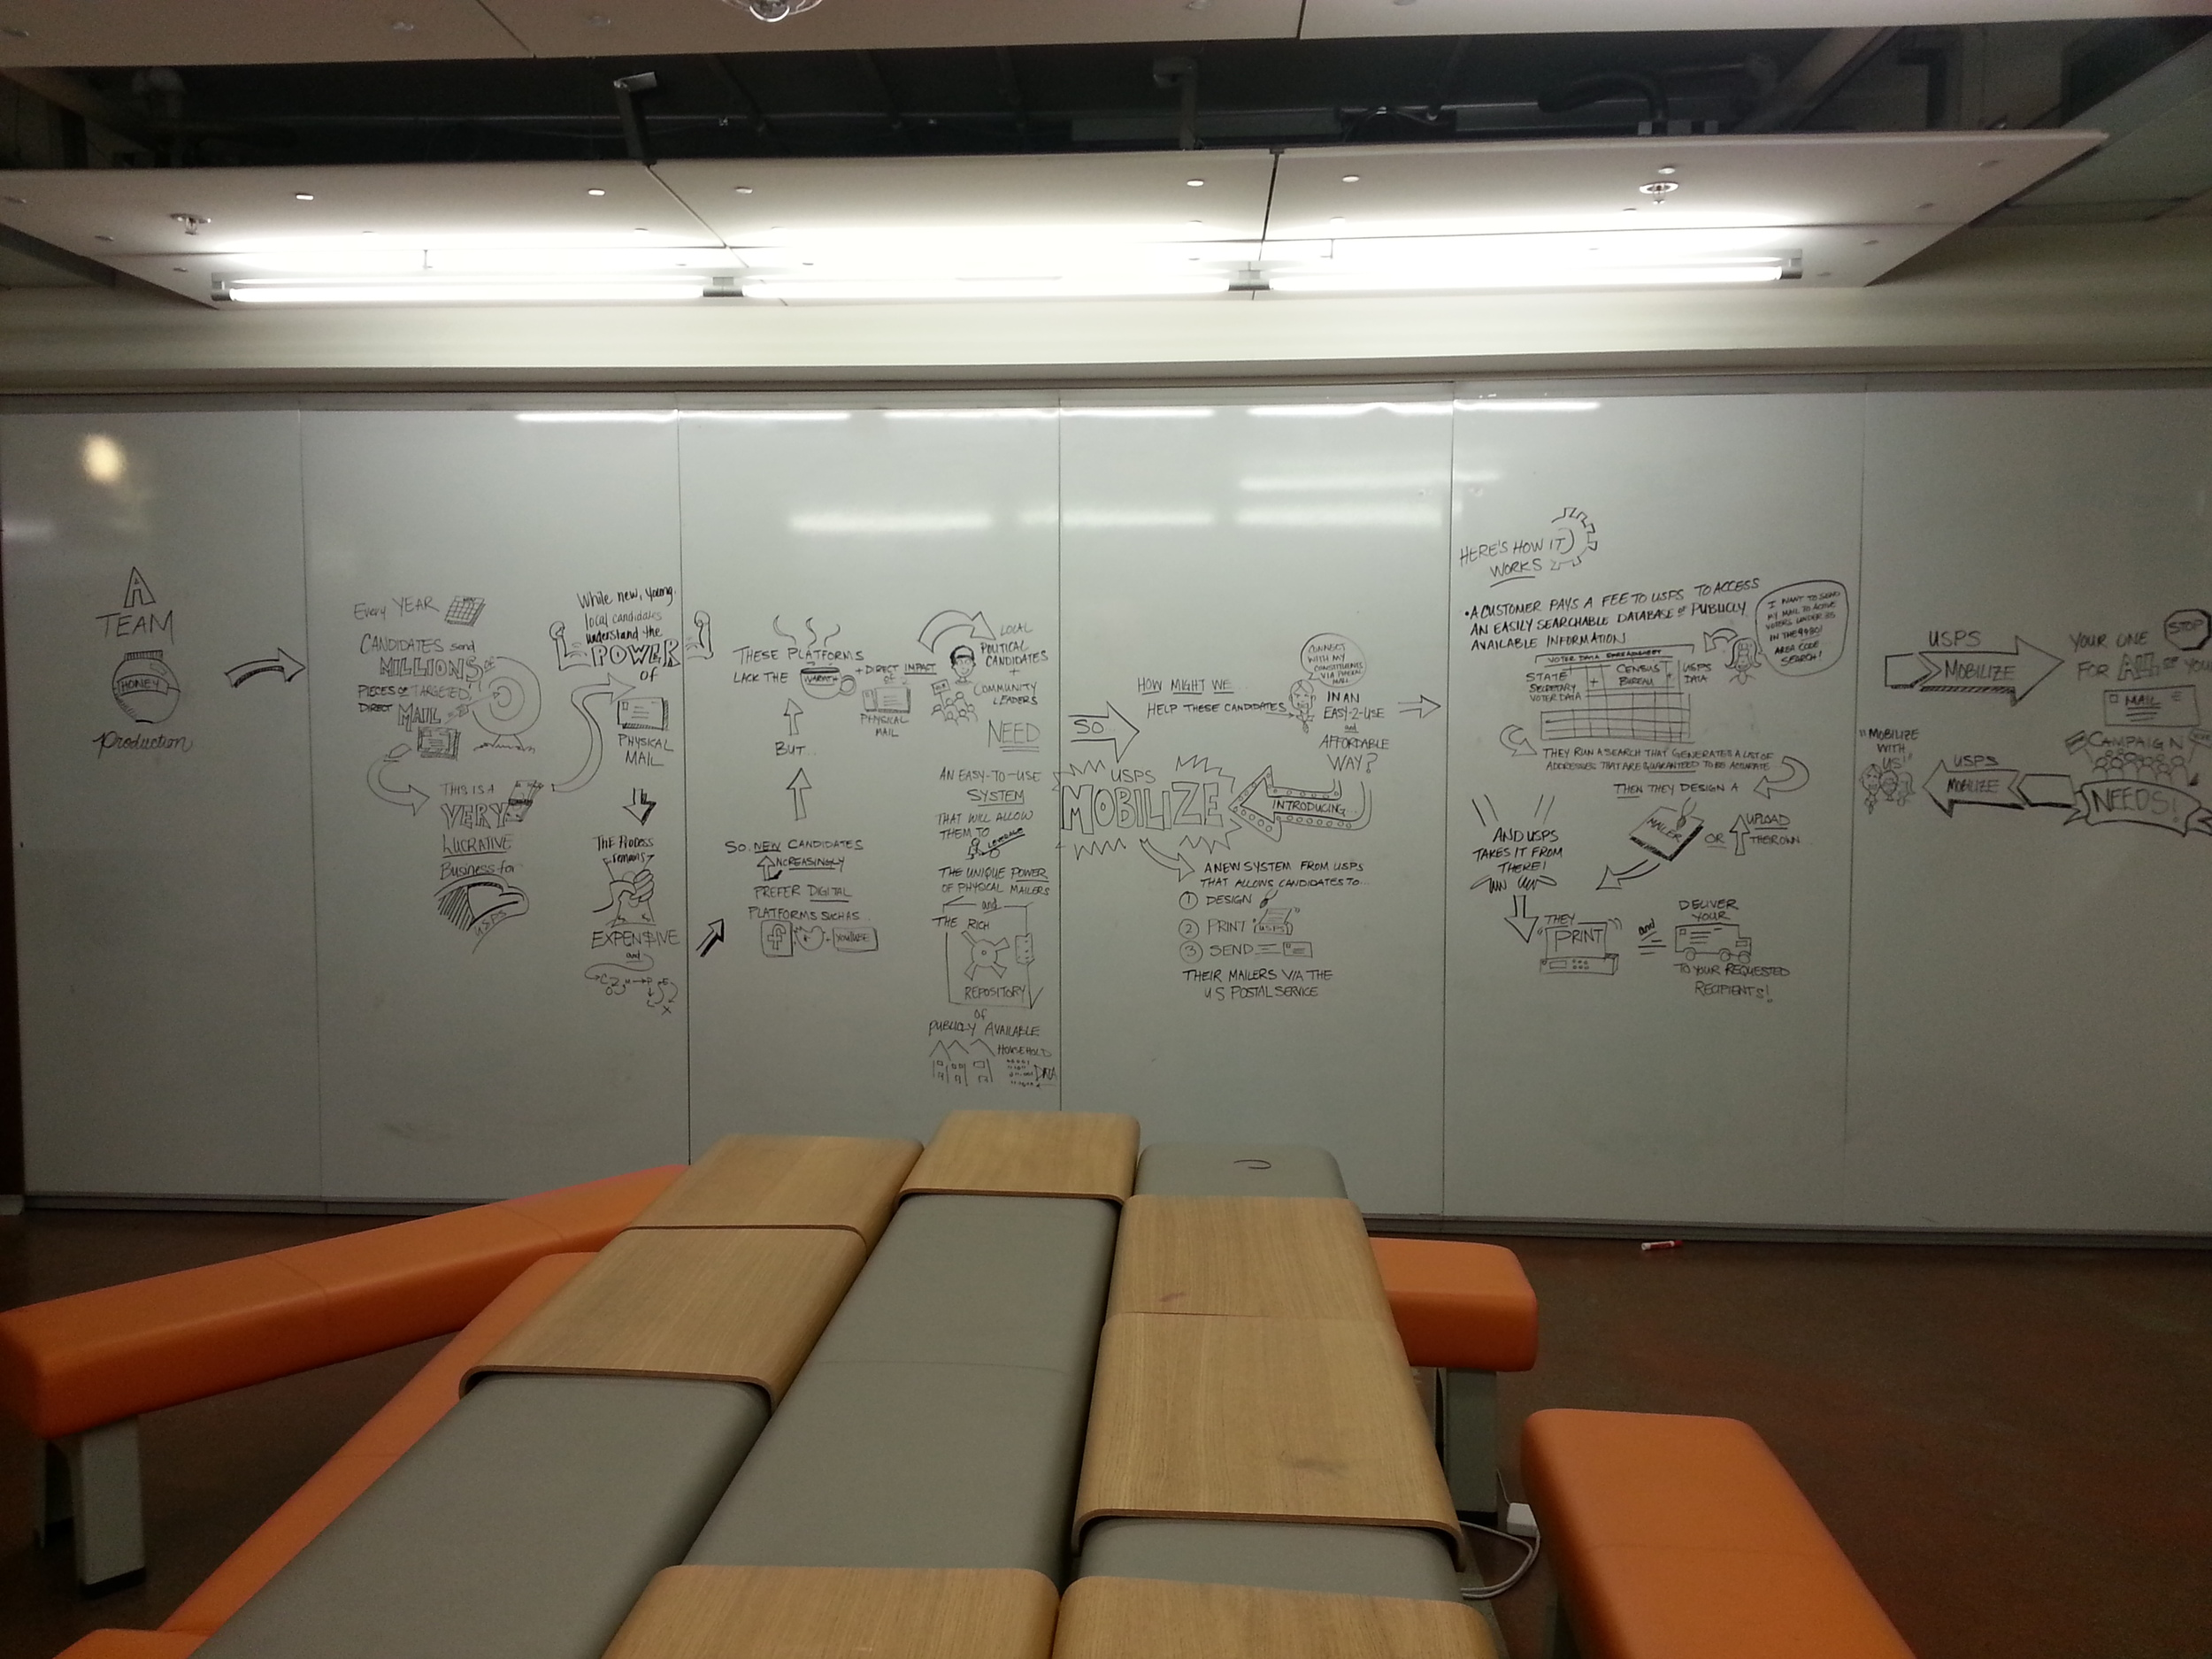 The whiteboards in Huddle Room 1 at the d.school where I crafted the illustrations for our d.bootcamp final video. (Photo by Emi Kolawole)